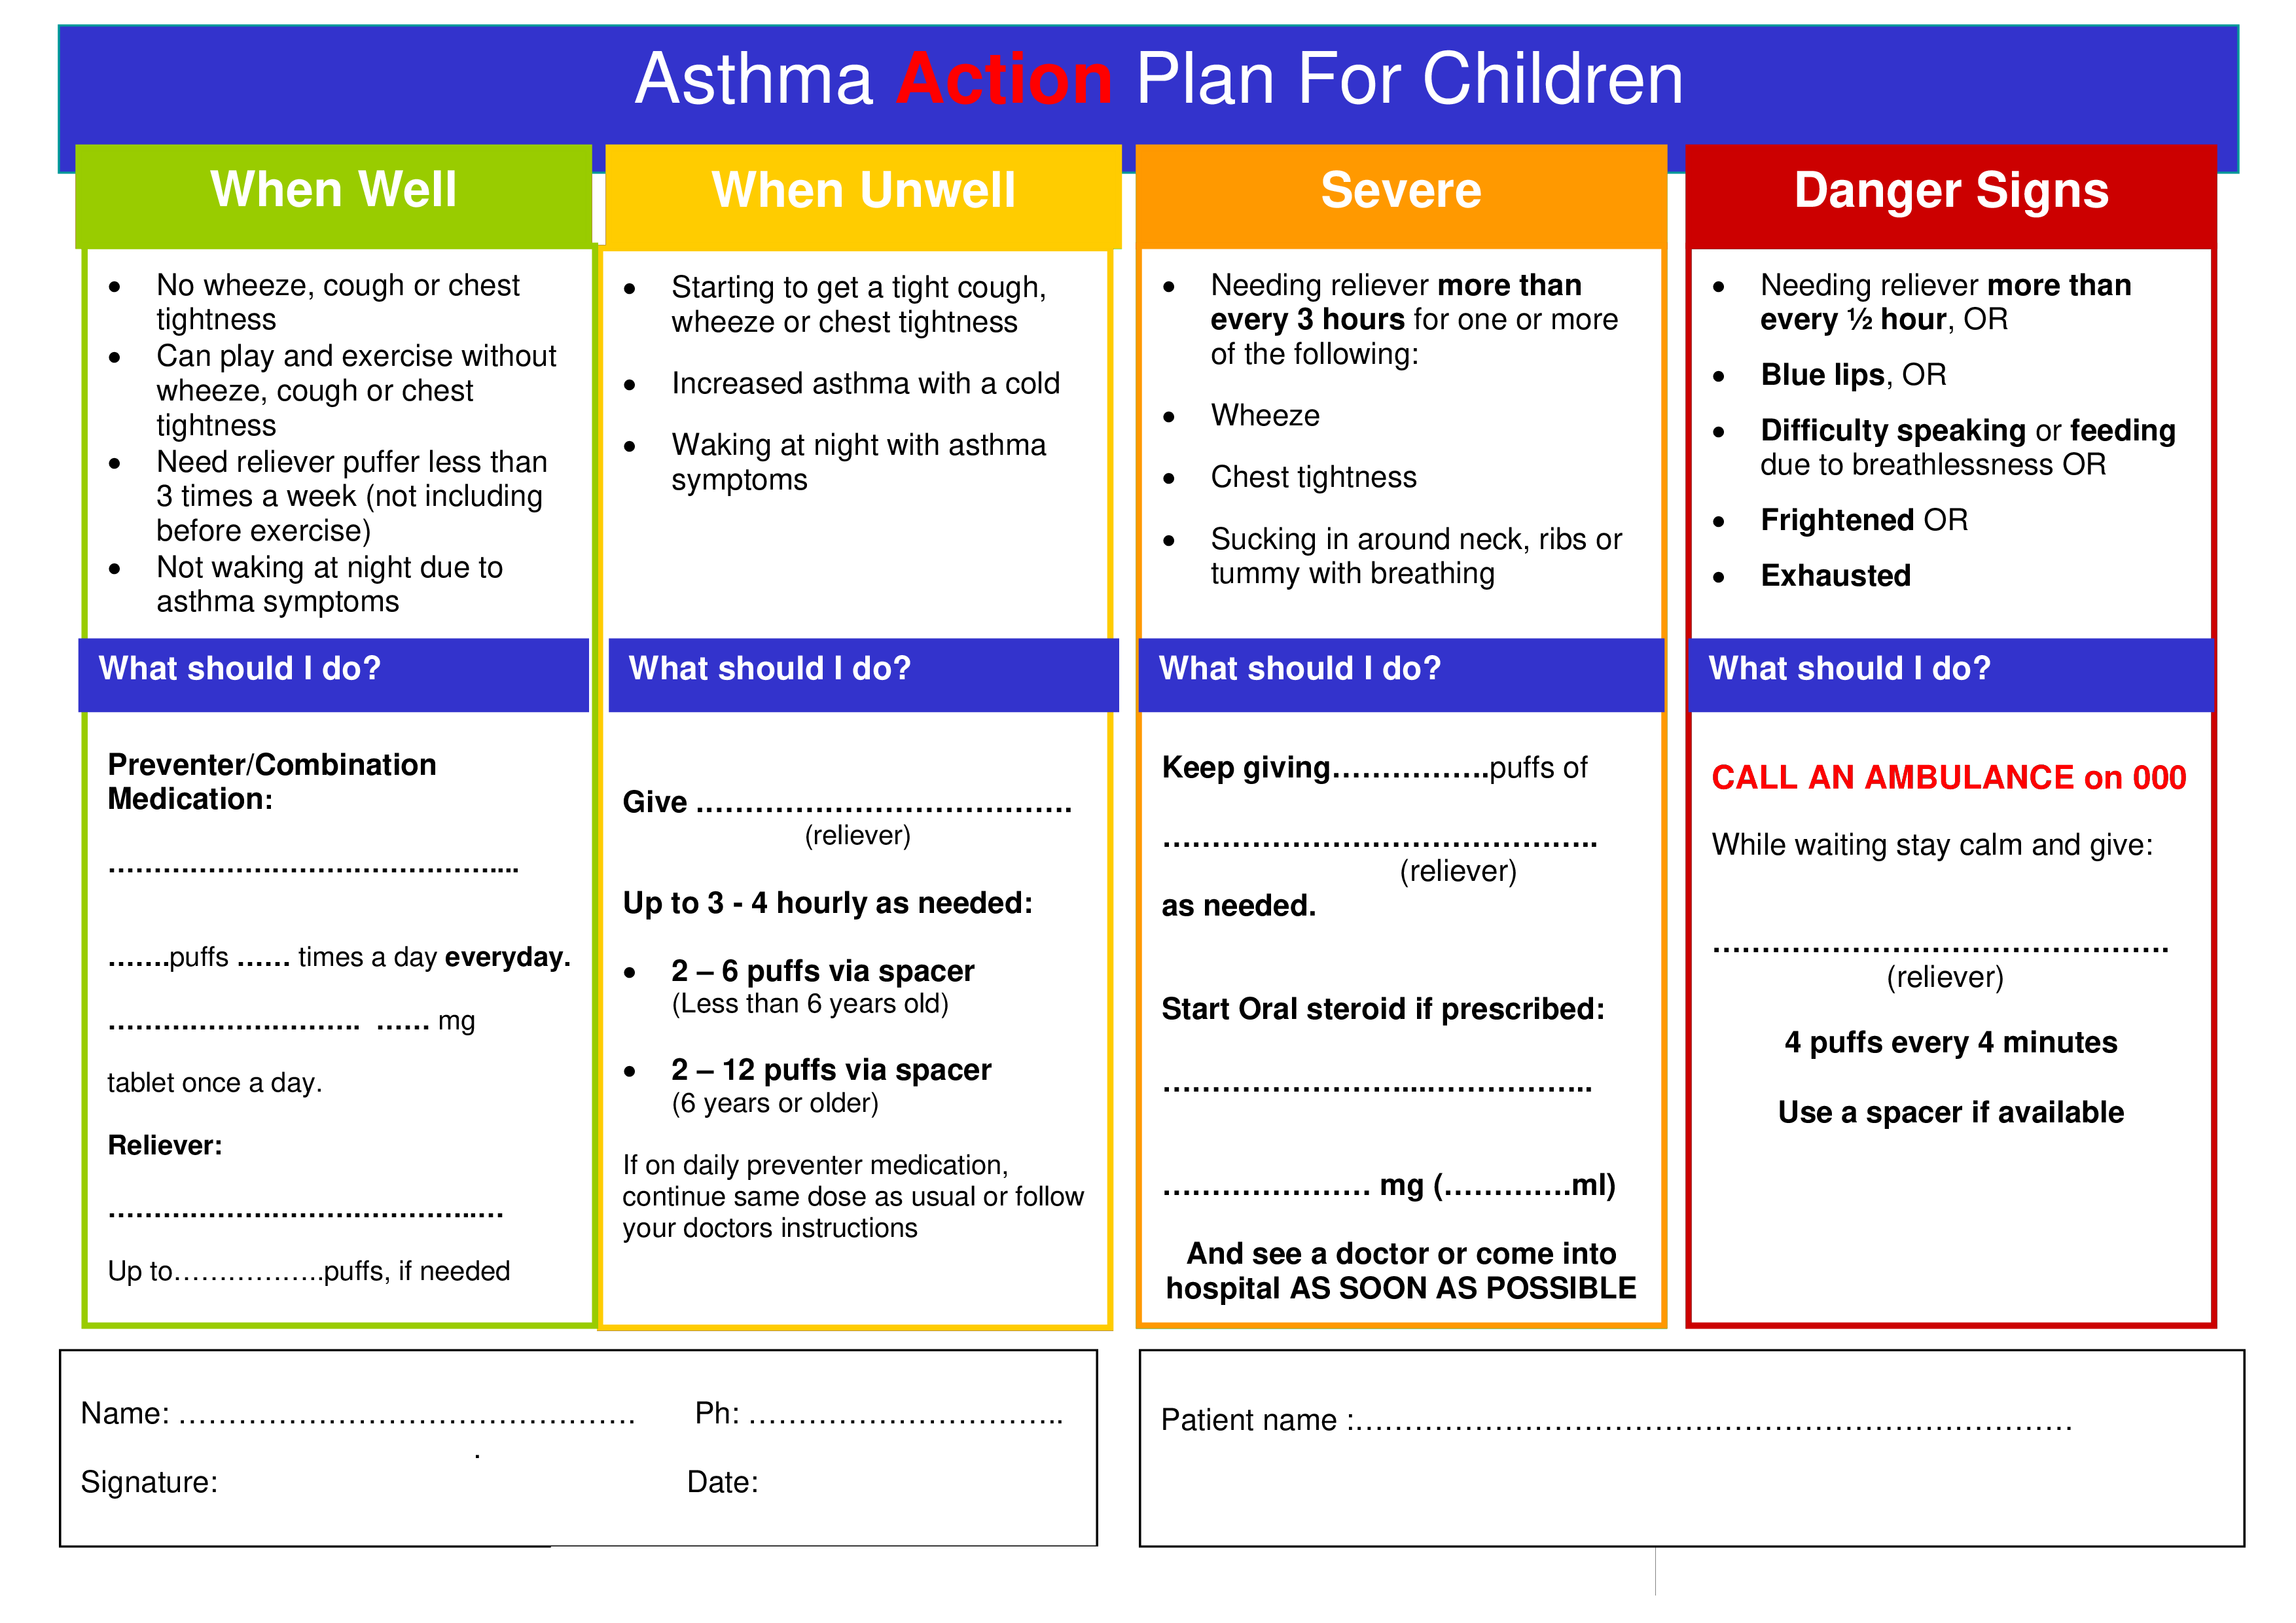 Paediatric Asthma Management Plan main image